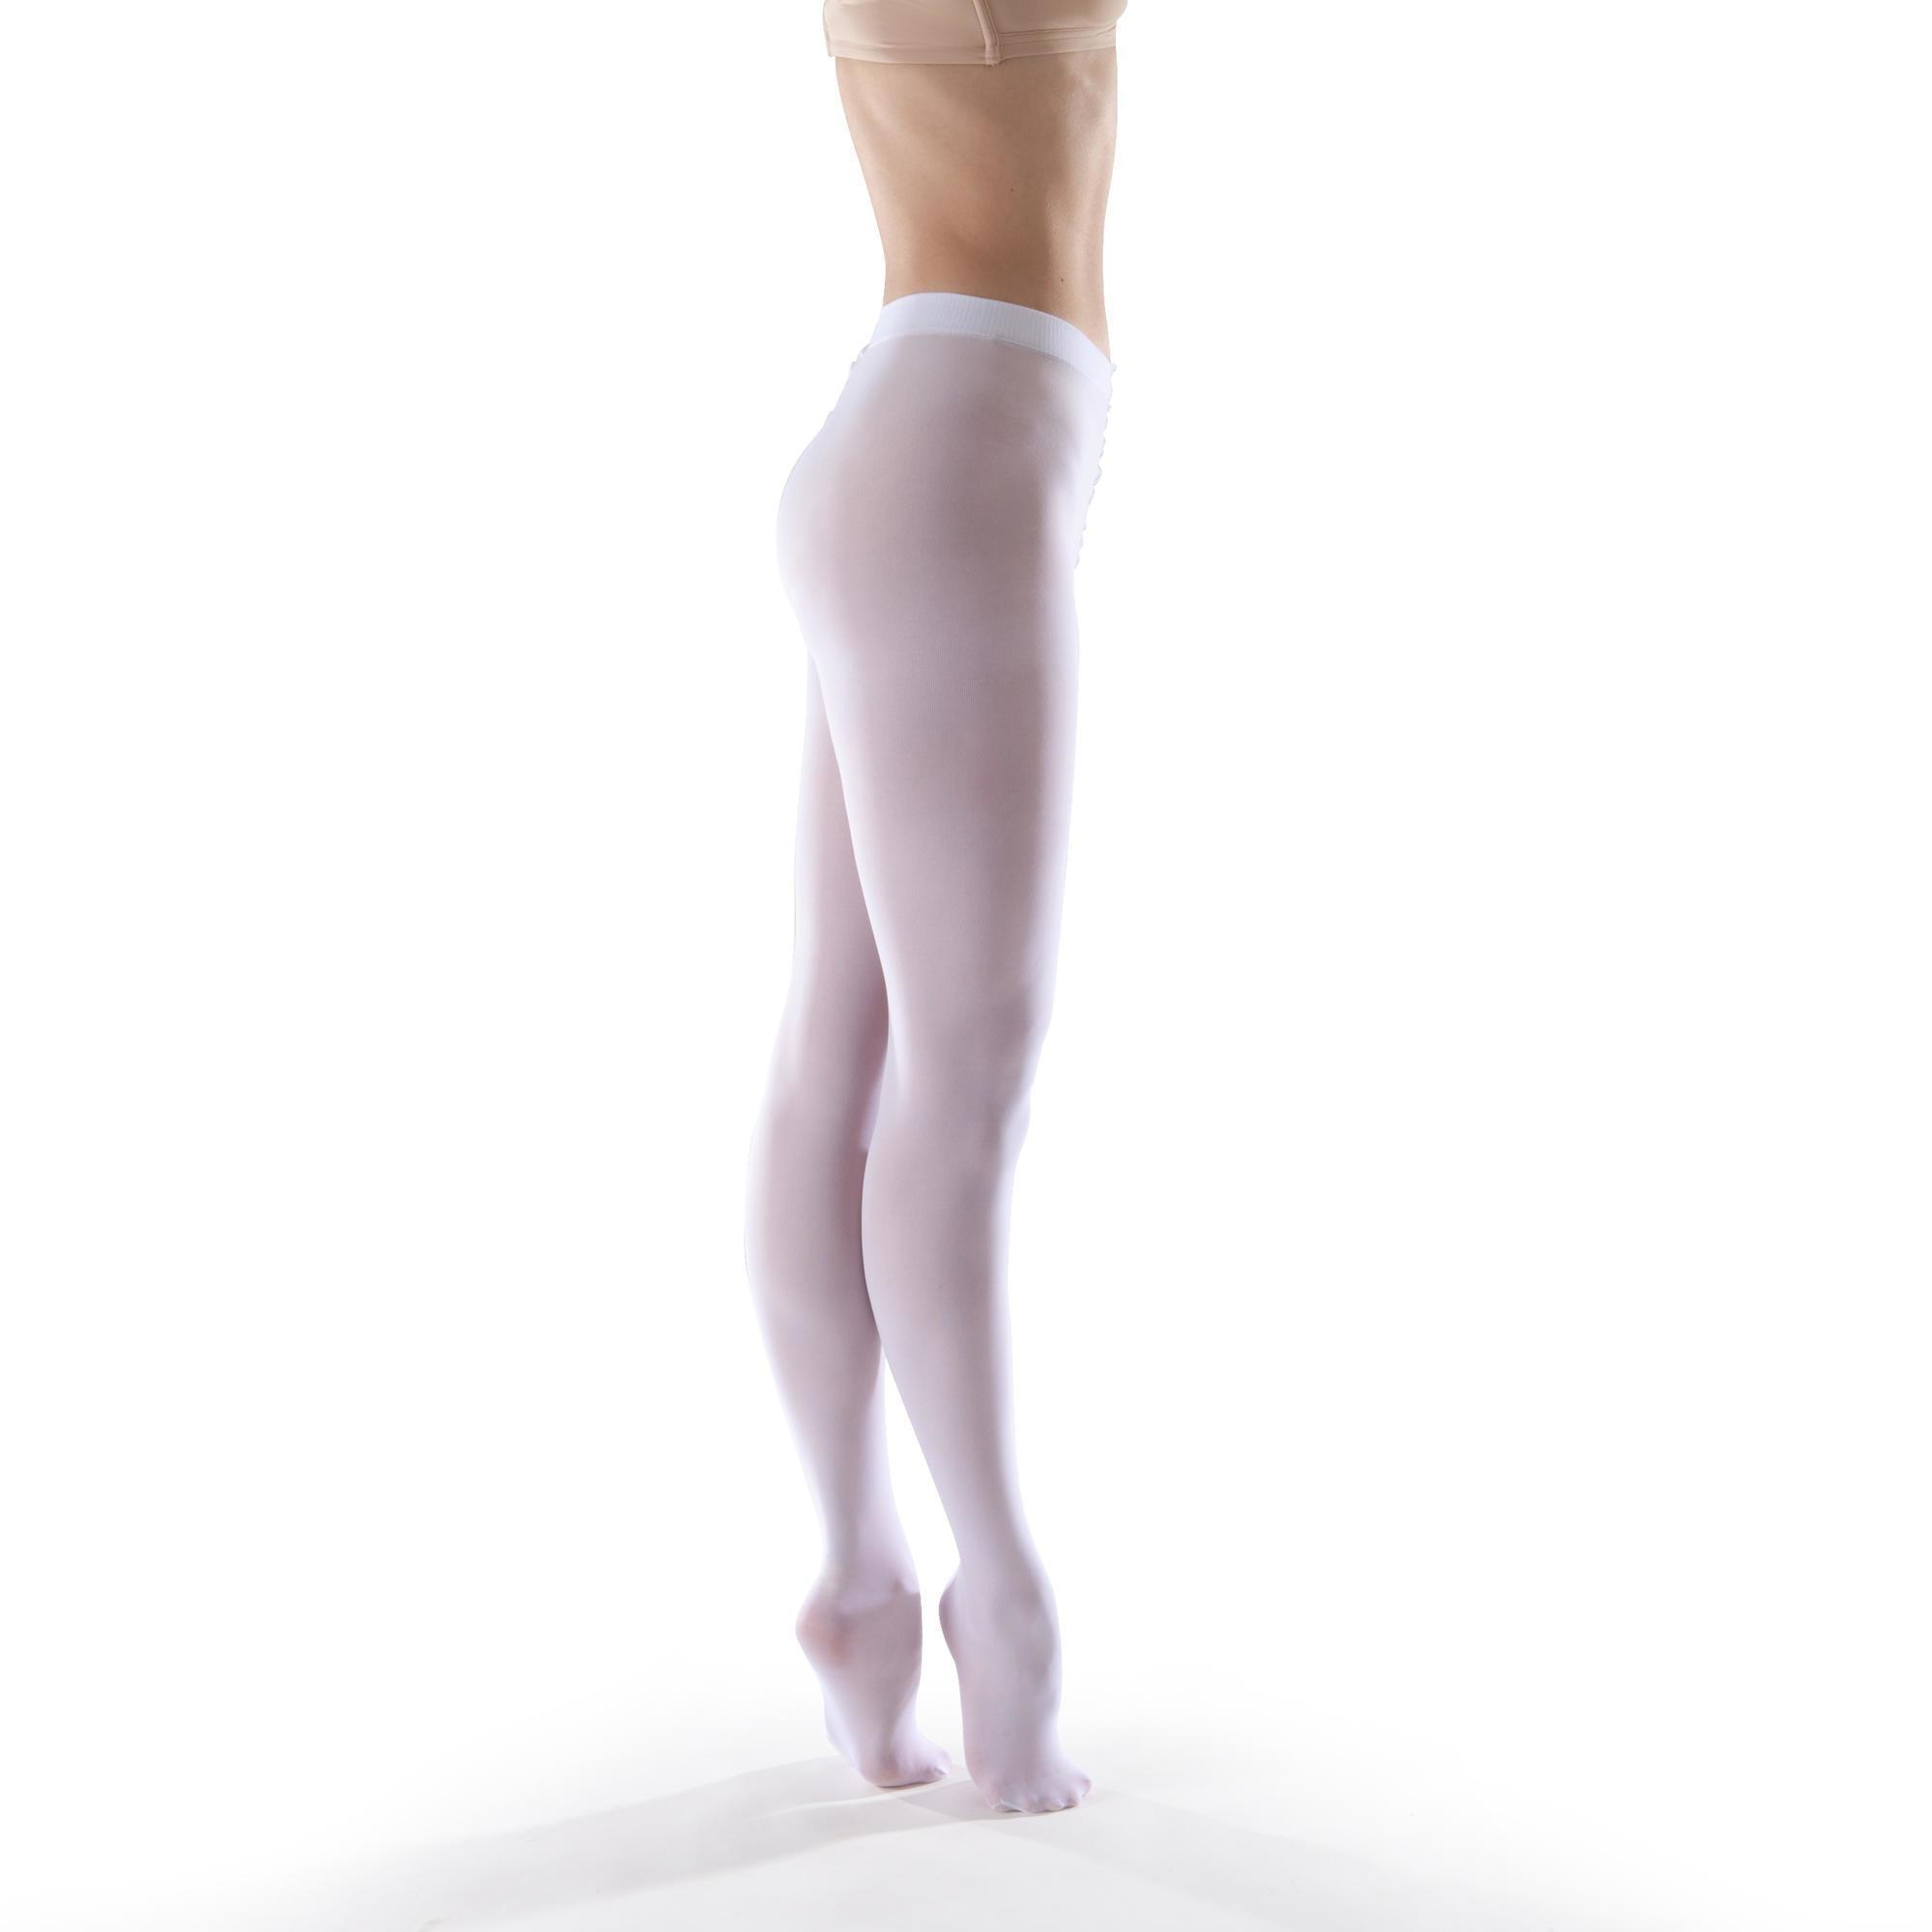 afb0045121ed4 Girls' Ballet Tights - White | Domyos by Decathlon